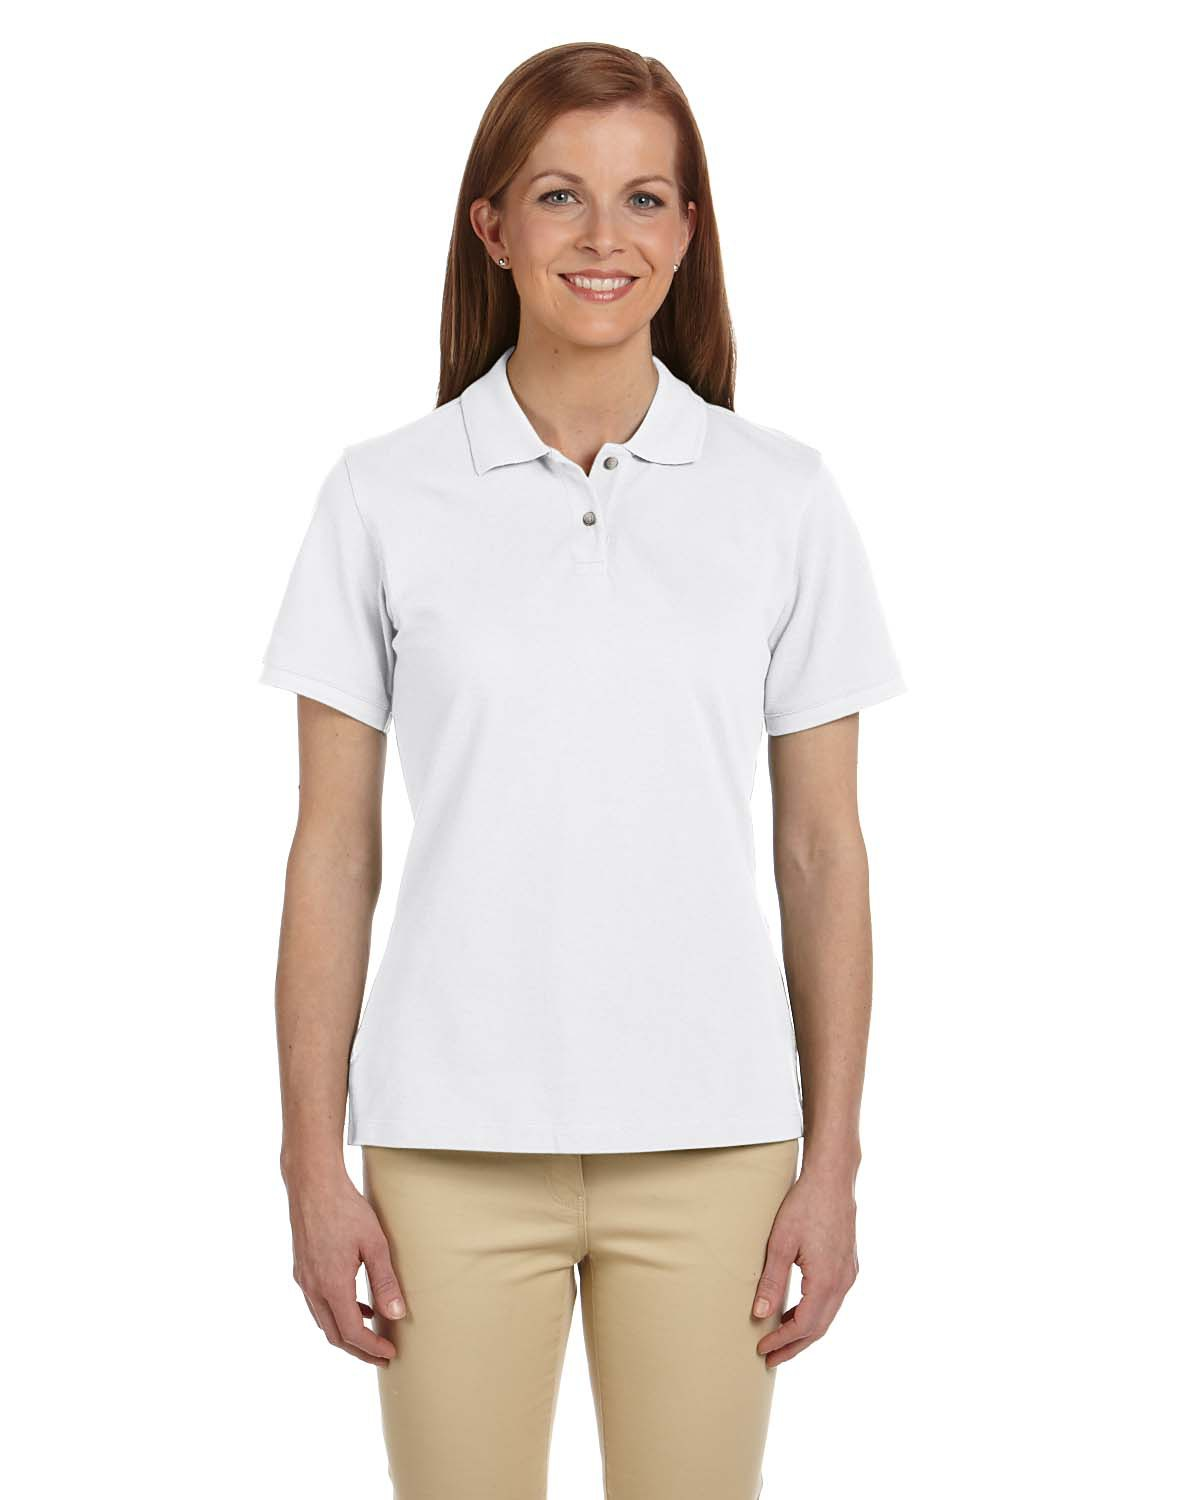 Cheap womens polo shirts wholesale golf t shirts gotapparel for Cheapest polo shirts online